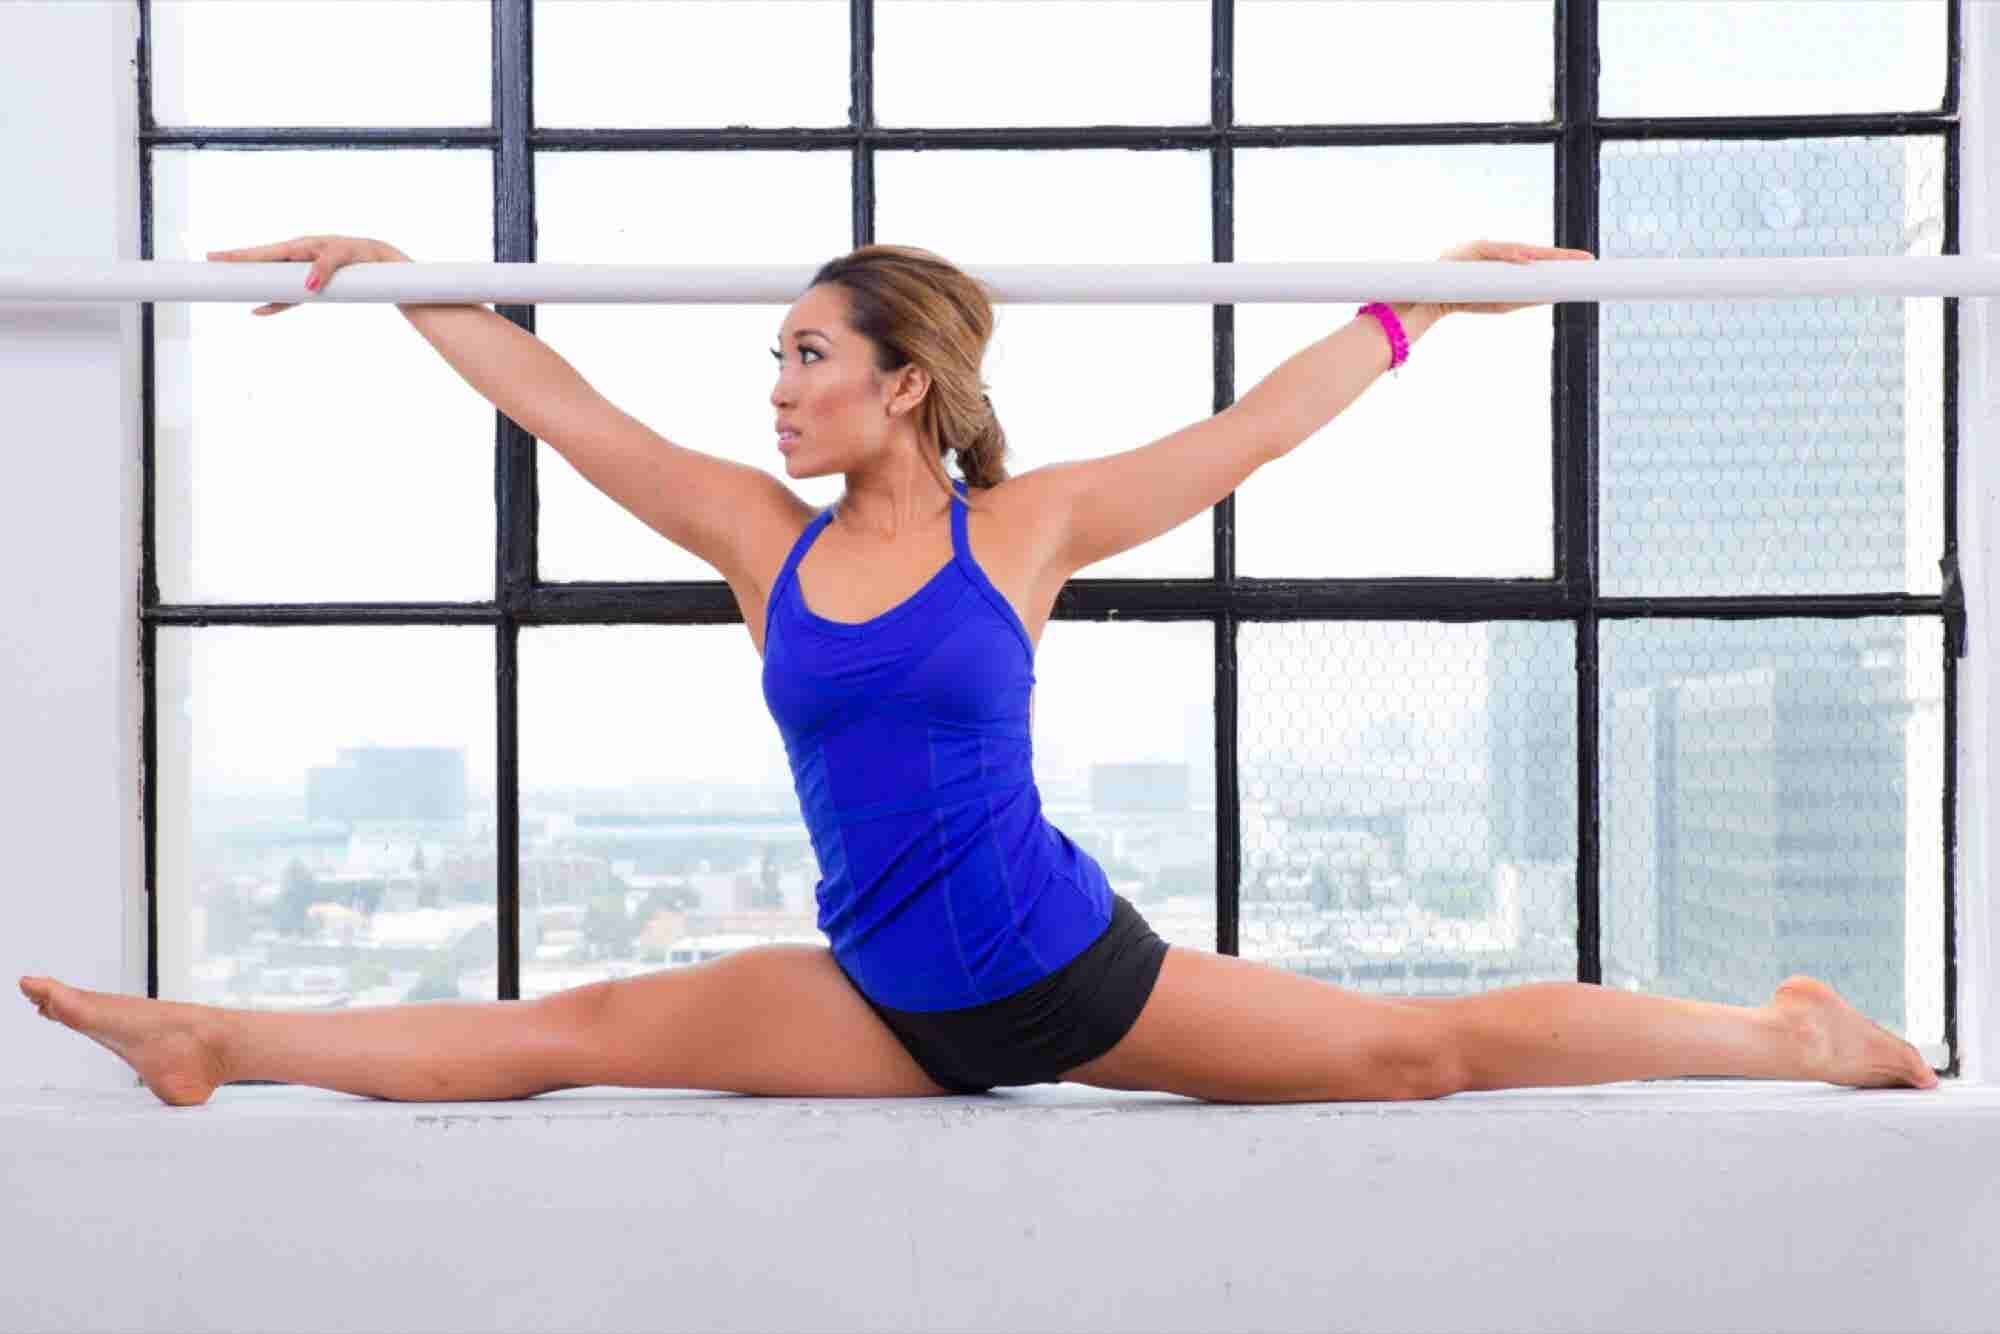 Why Viral YouTube Fitness Video Star Cassey Ho Will Never Diet Again